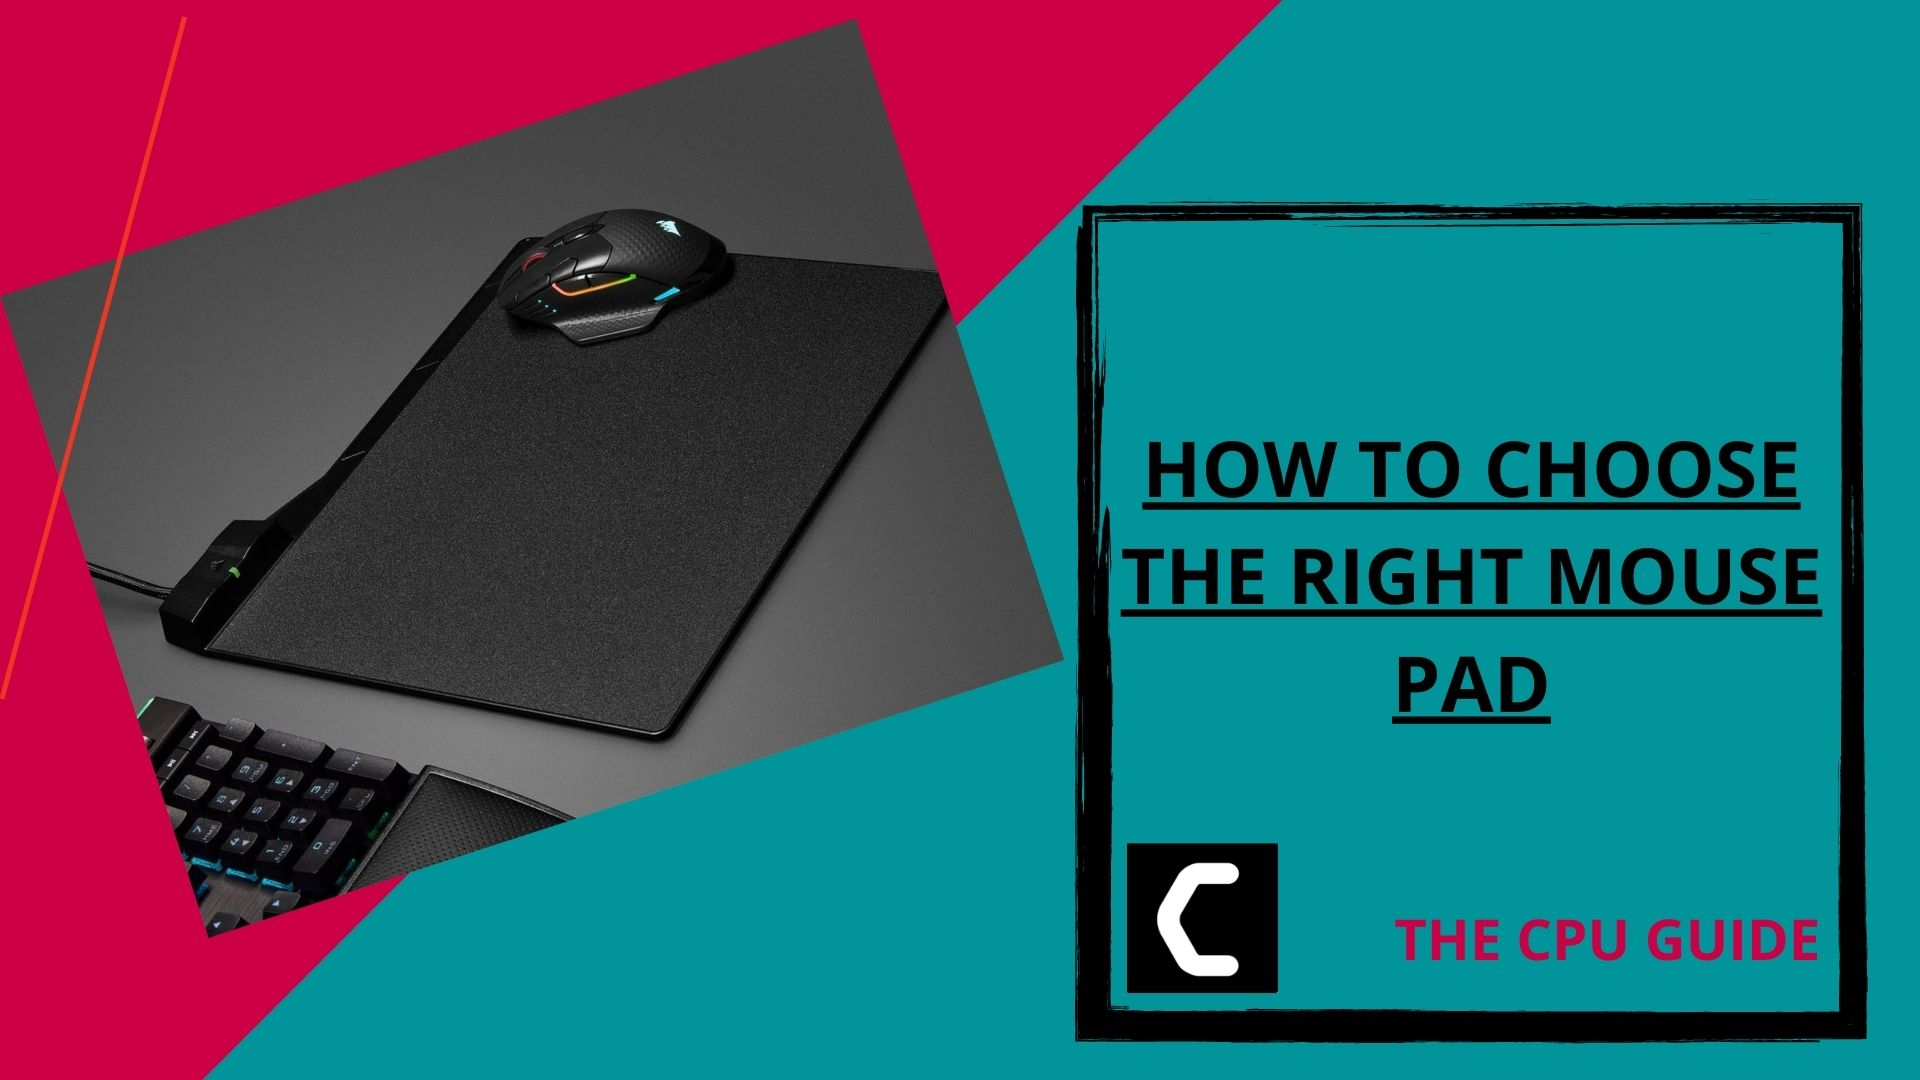 How to Choose the Right Mouse Pad